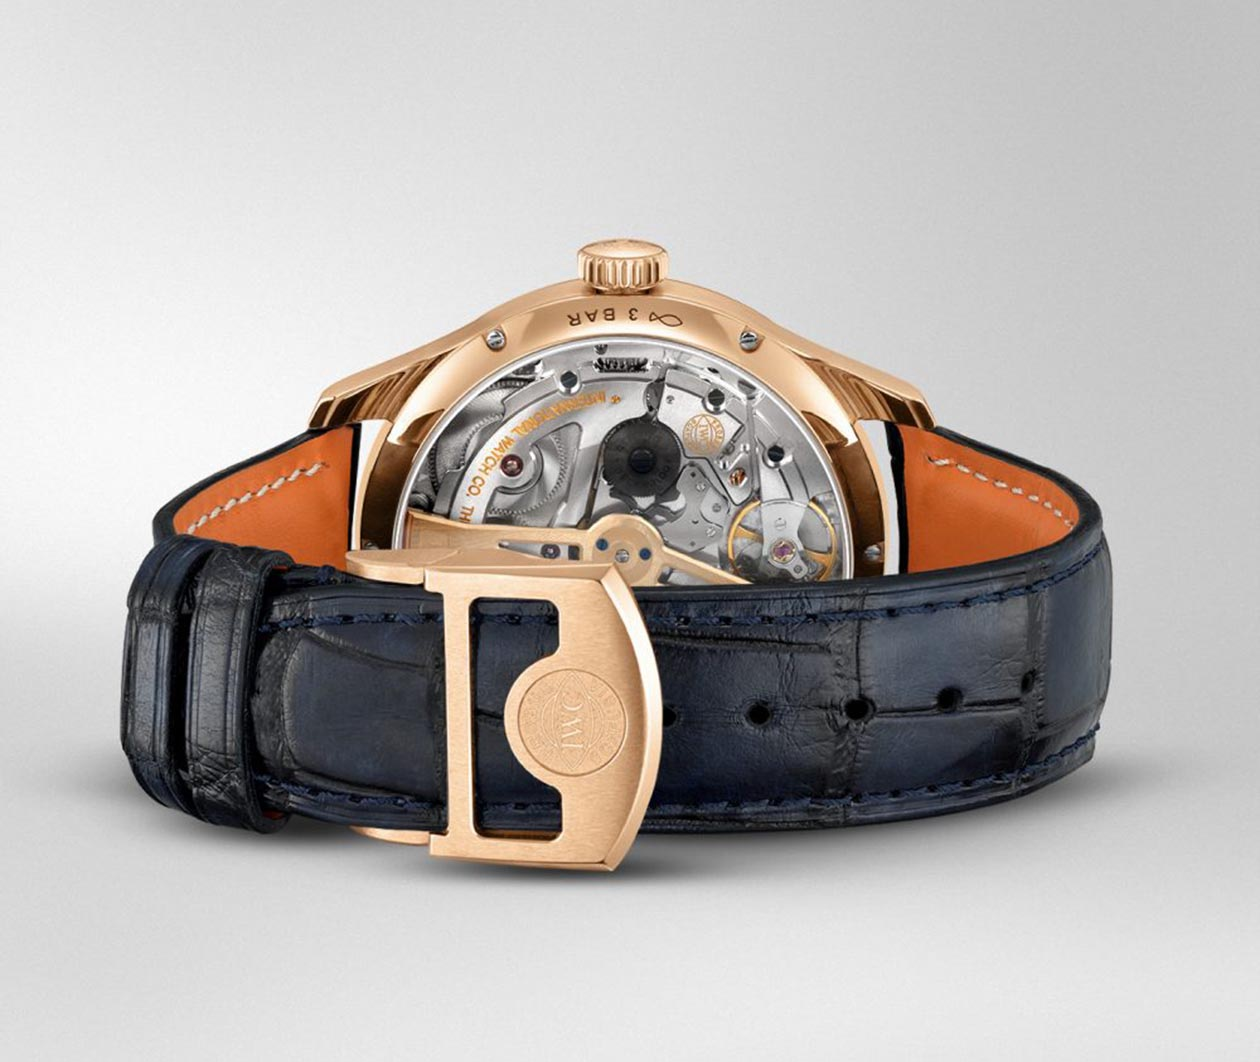 IWC Portugieser PerpetualCalendarBoutiqueEdition IW503312 Carousel 6 FINAL